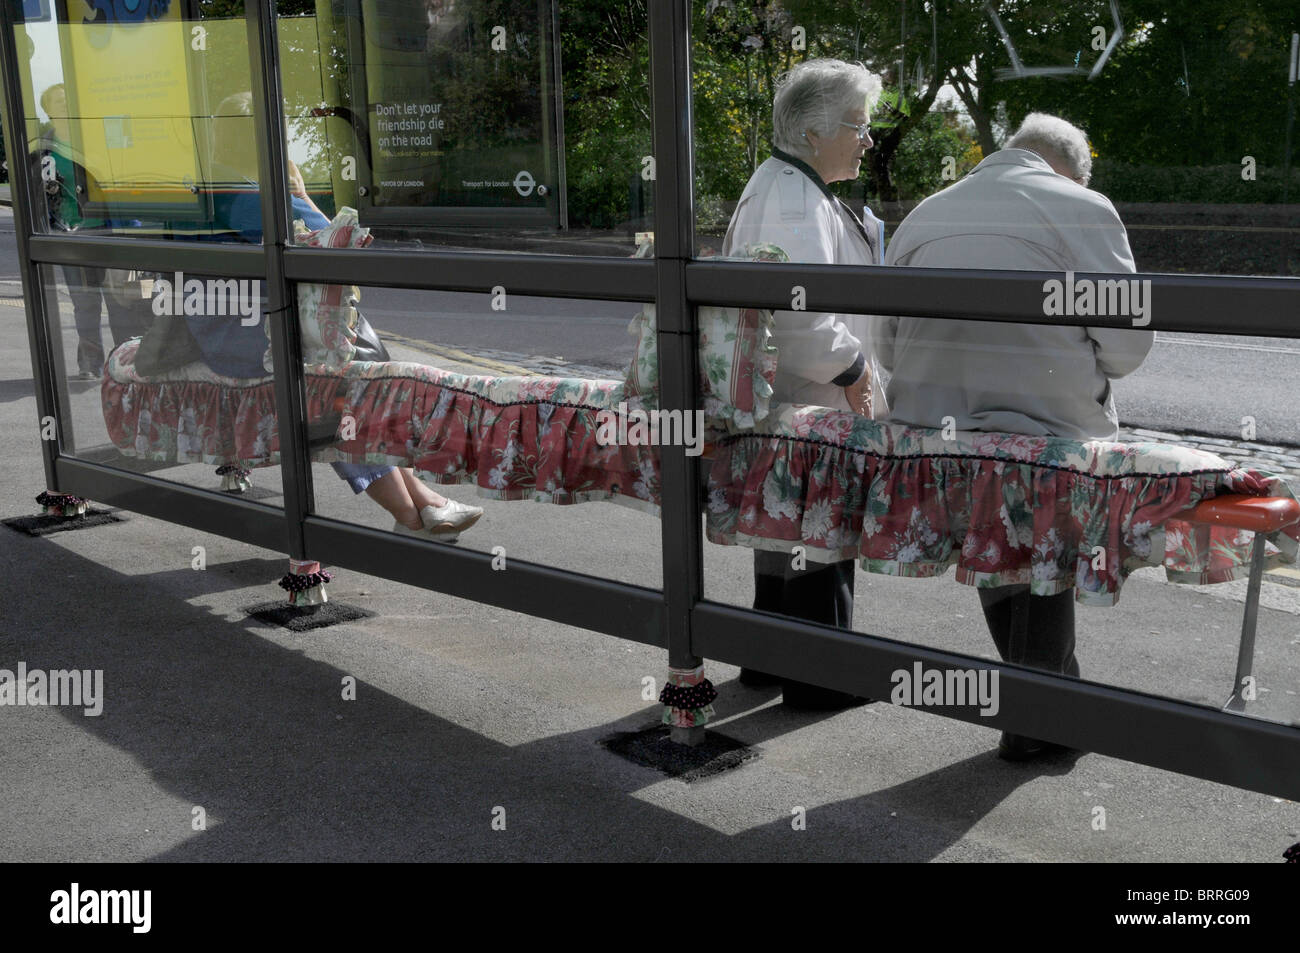 SPECIAL DECORATION TO BUS STOP FOR KNITTING AND STITCHING FESTIVAL IN LONDON - Stock Image